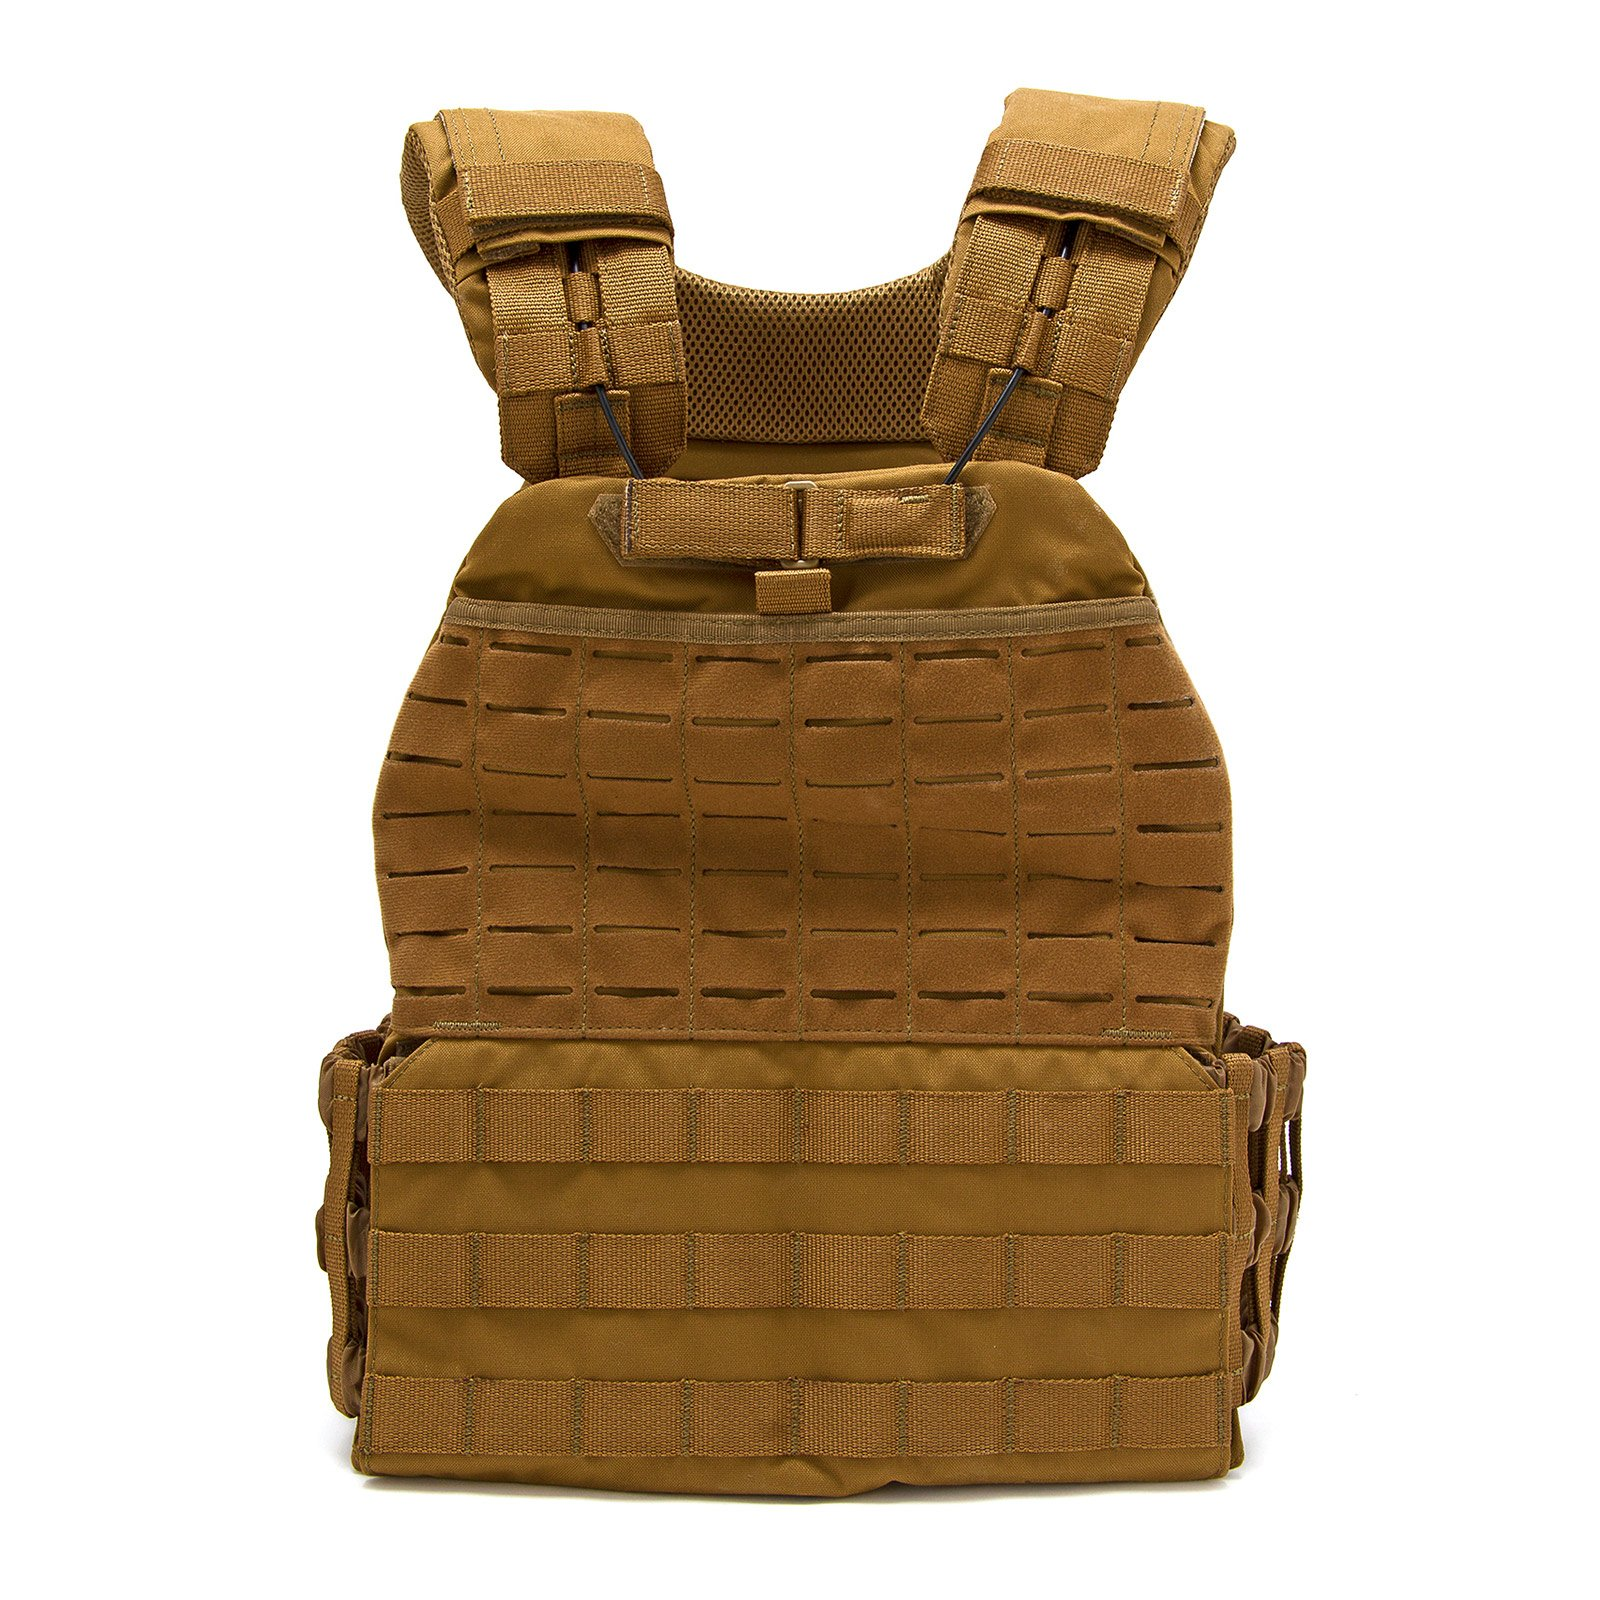 Fringe Sport Adjustable Tactical Weight Plate Vest / 10lb, 15lb or 20lb / Modular Plate Carrier for Training & Conditioning (15lb, Tan)